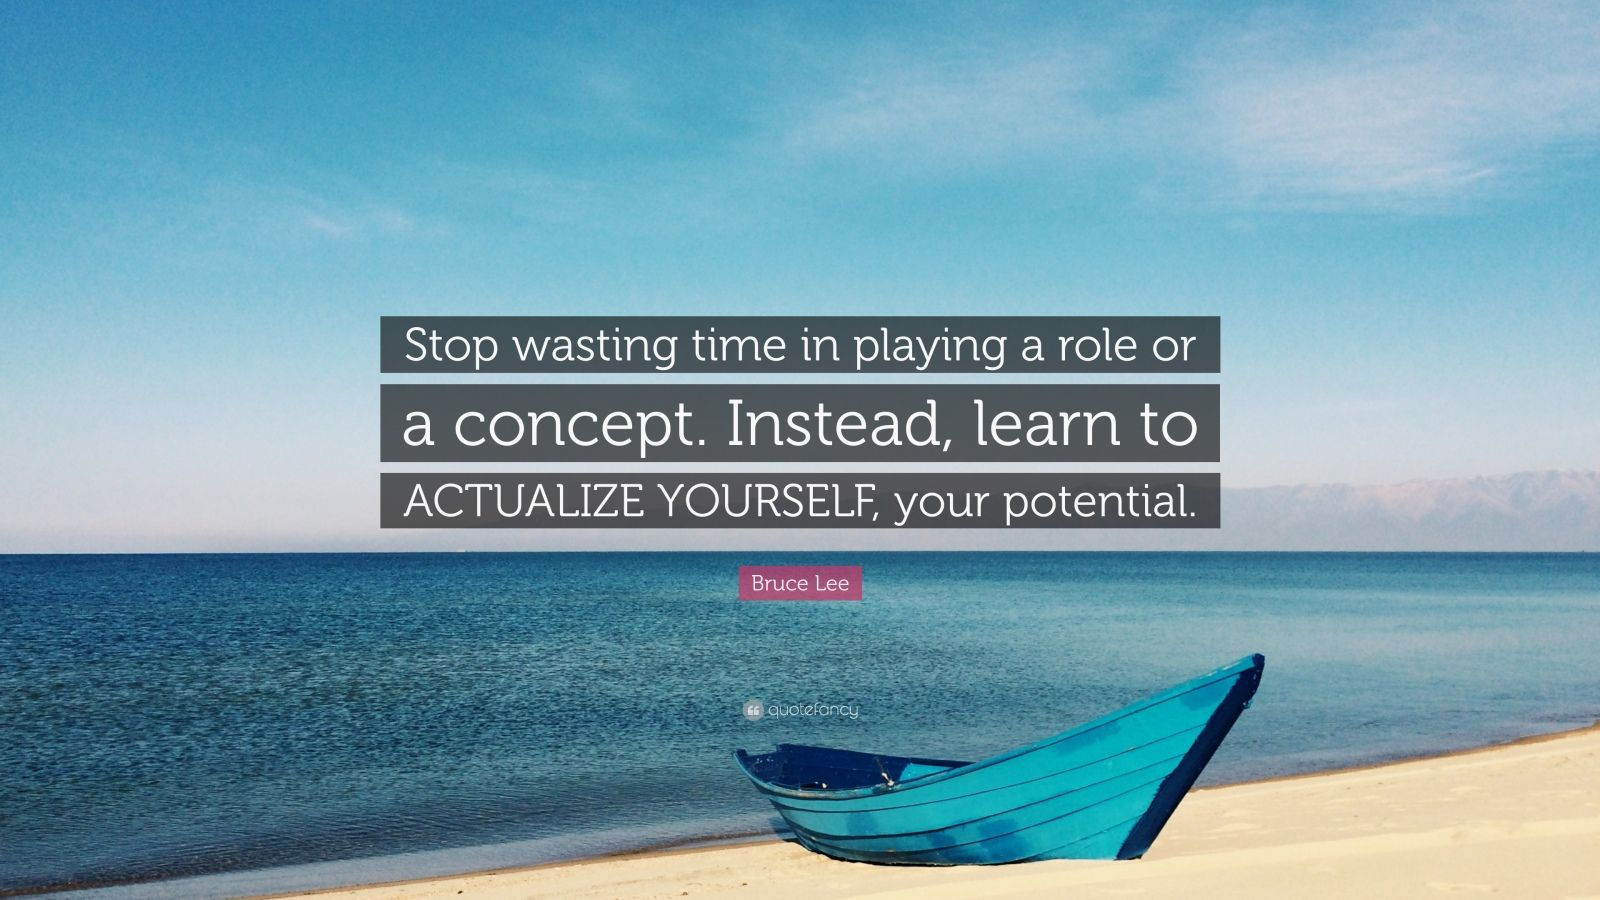 """Bruce Lee Quote: """"Stop wasting time in playing a role or a concept. Instead, learn to ACTUALIZE YOURSELF, your potential."""""""